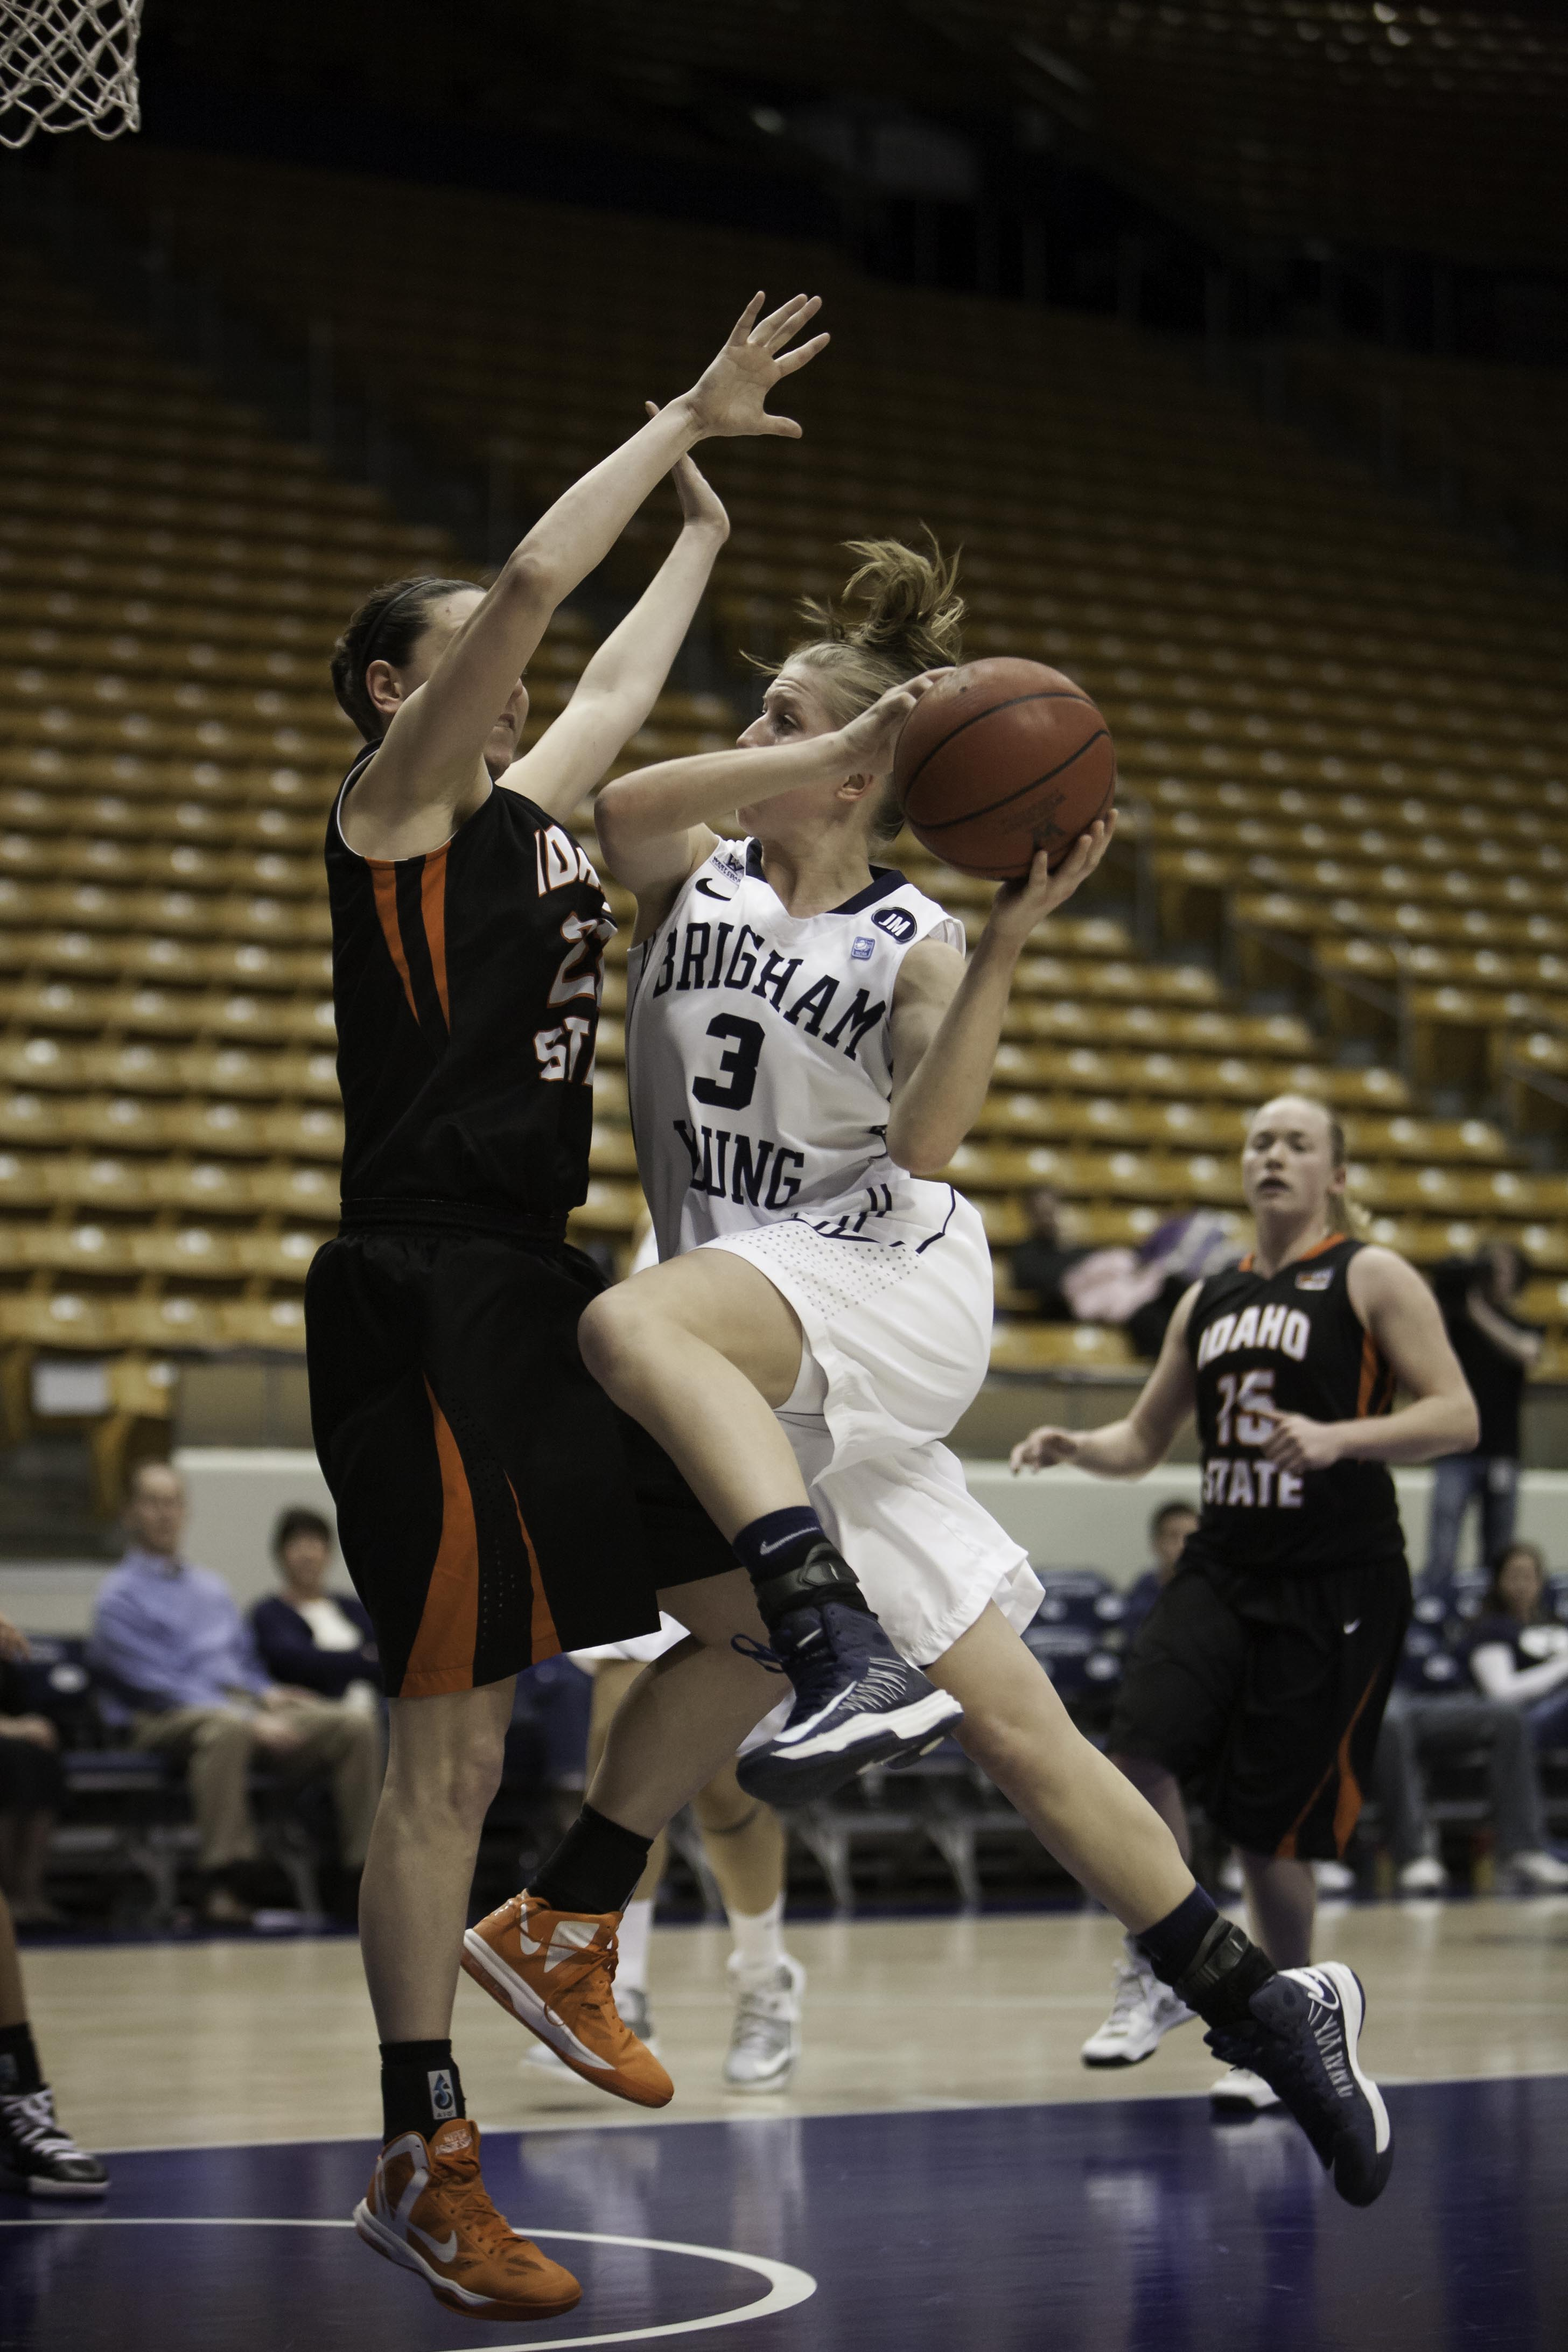 Ashley Garfield jumps for the lay up in Wednesday's WNIT game against Idaho State. (Photo by Elliott Miller)